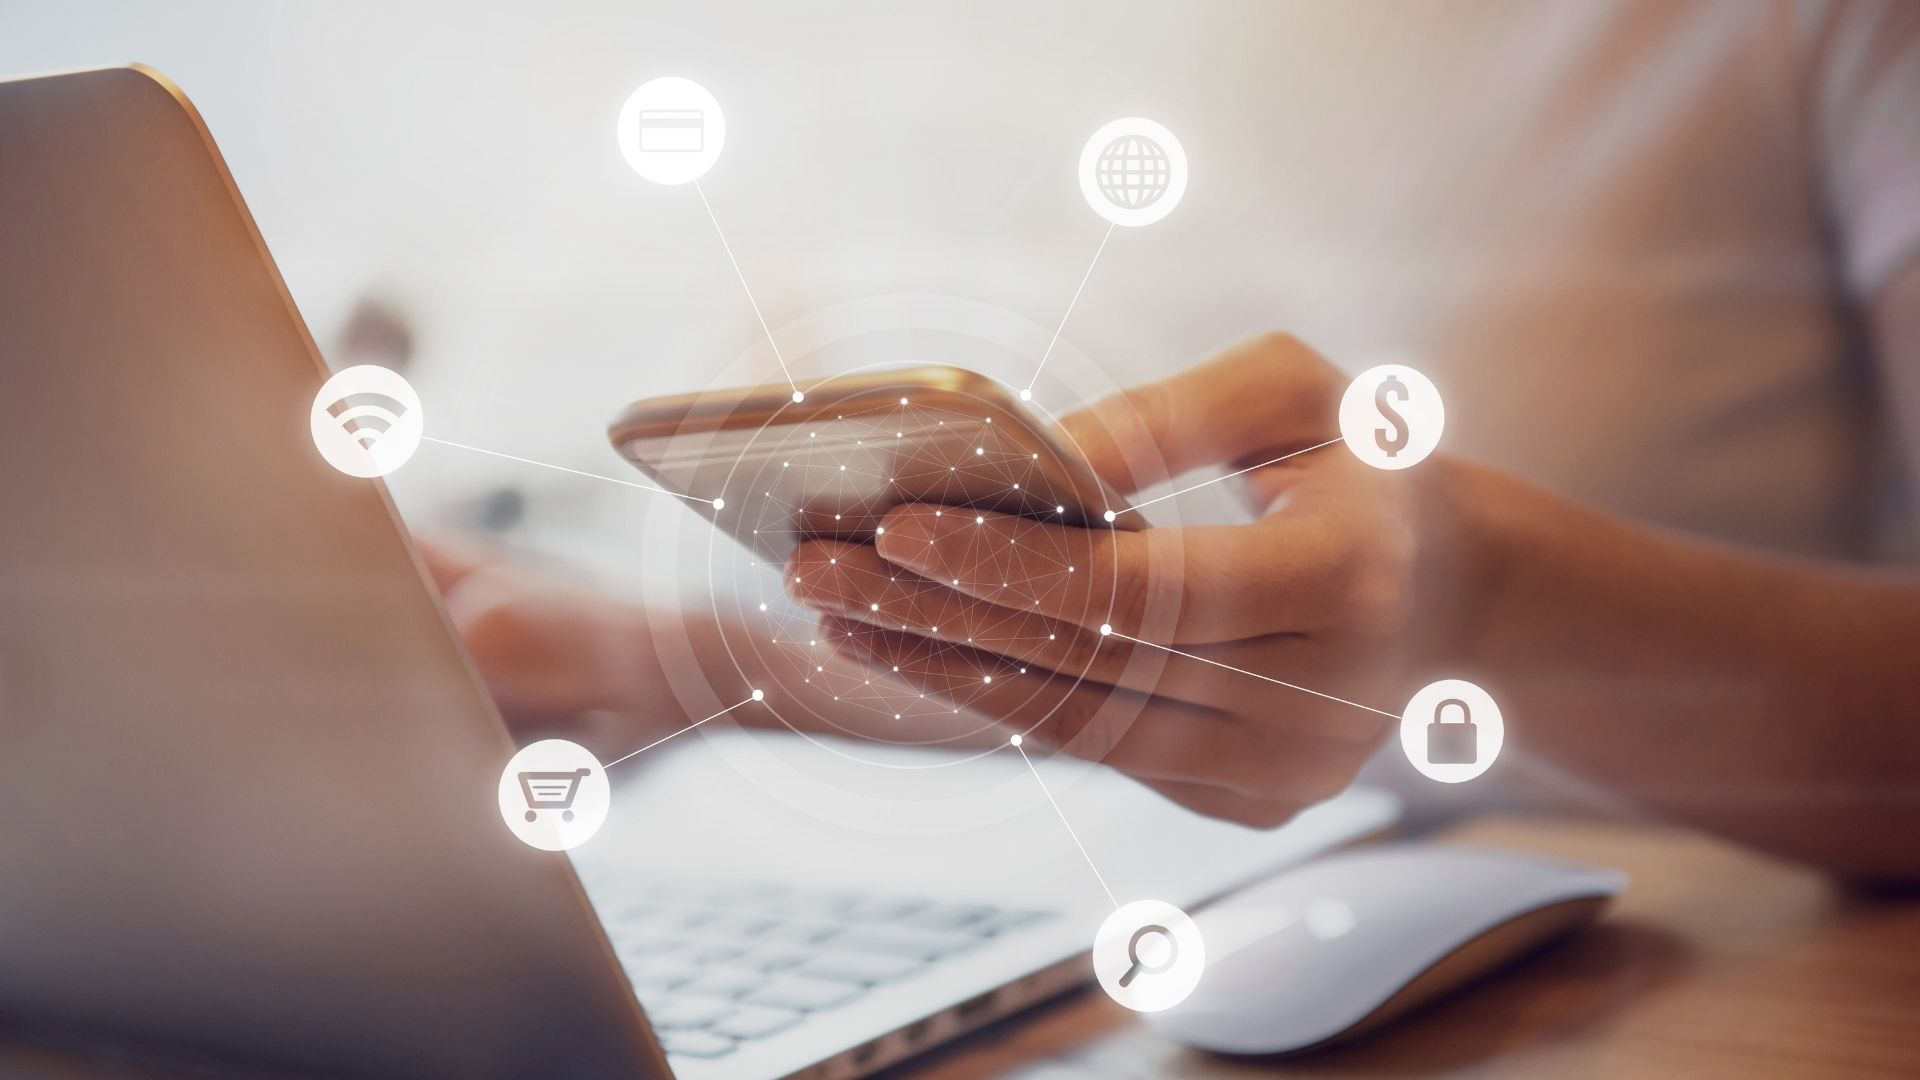 In a Digital World, What is the Future for Community Banking? 39